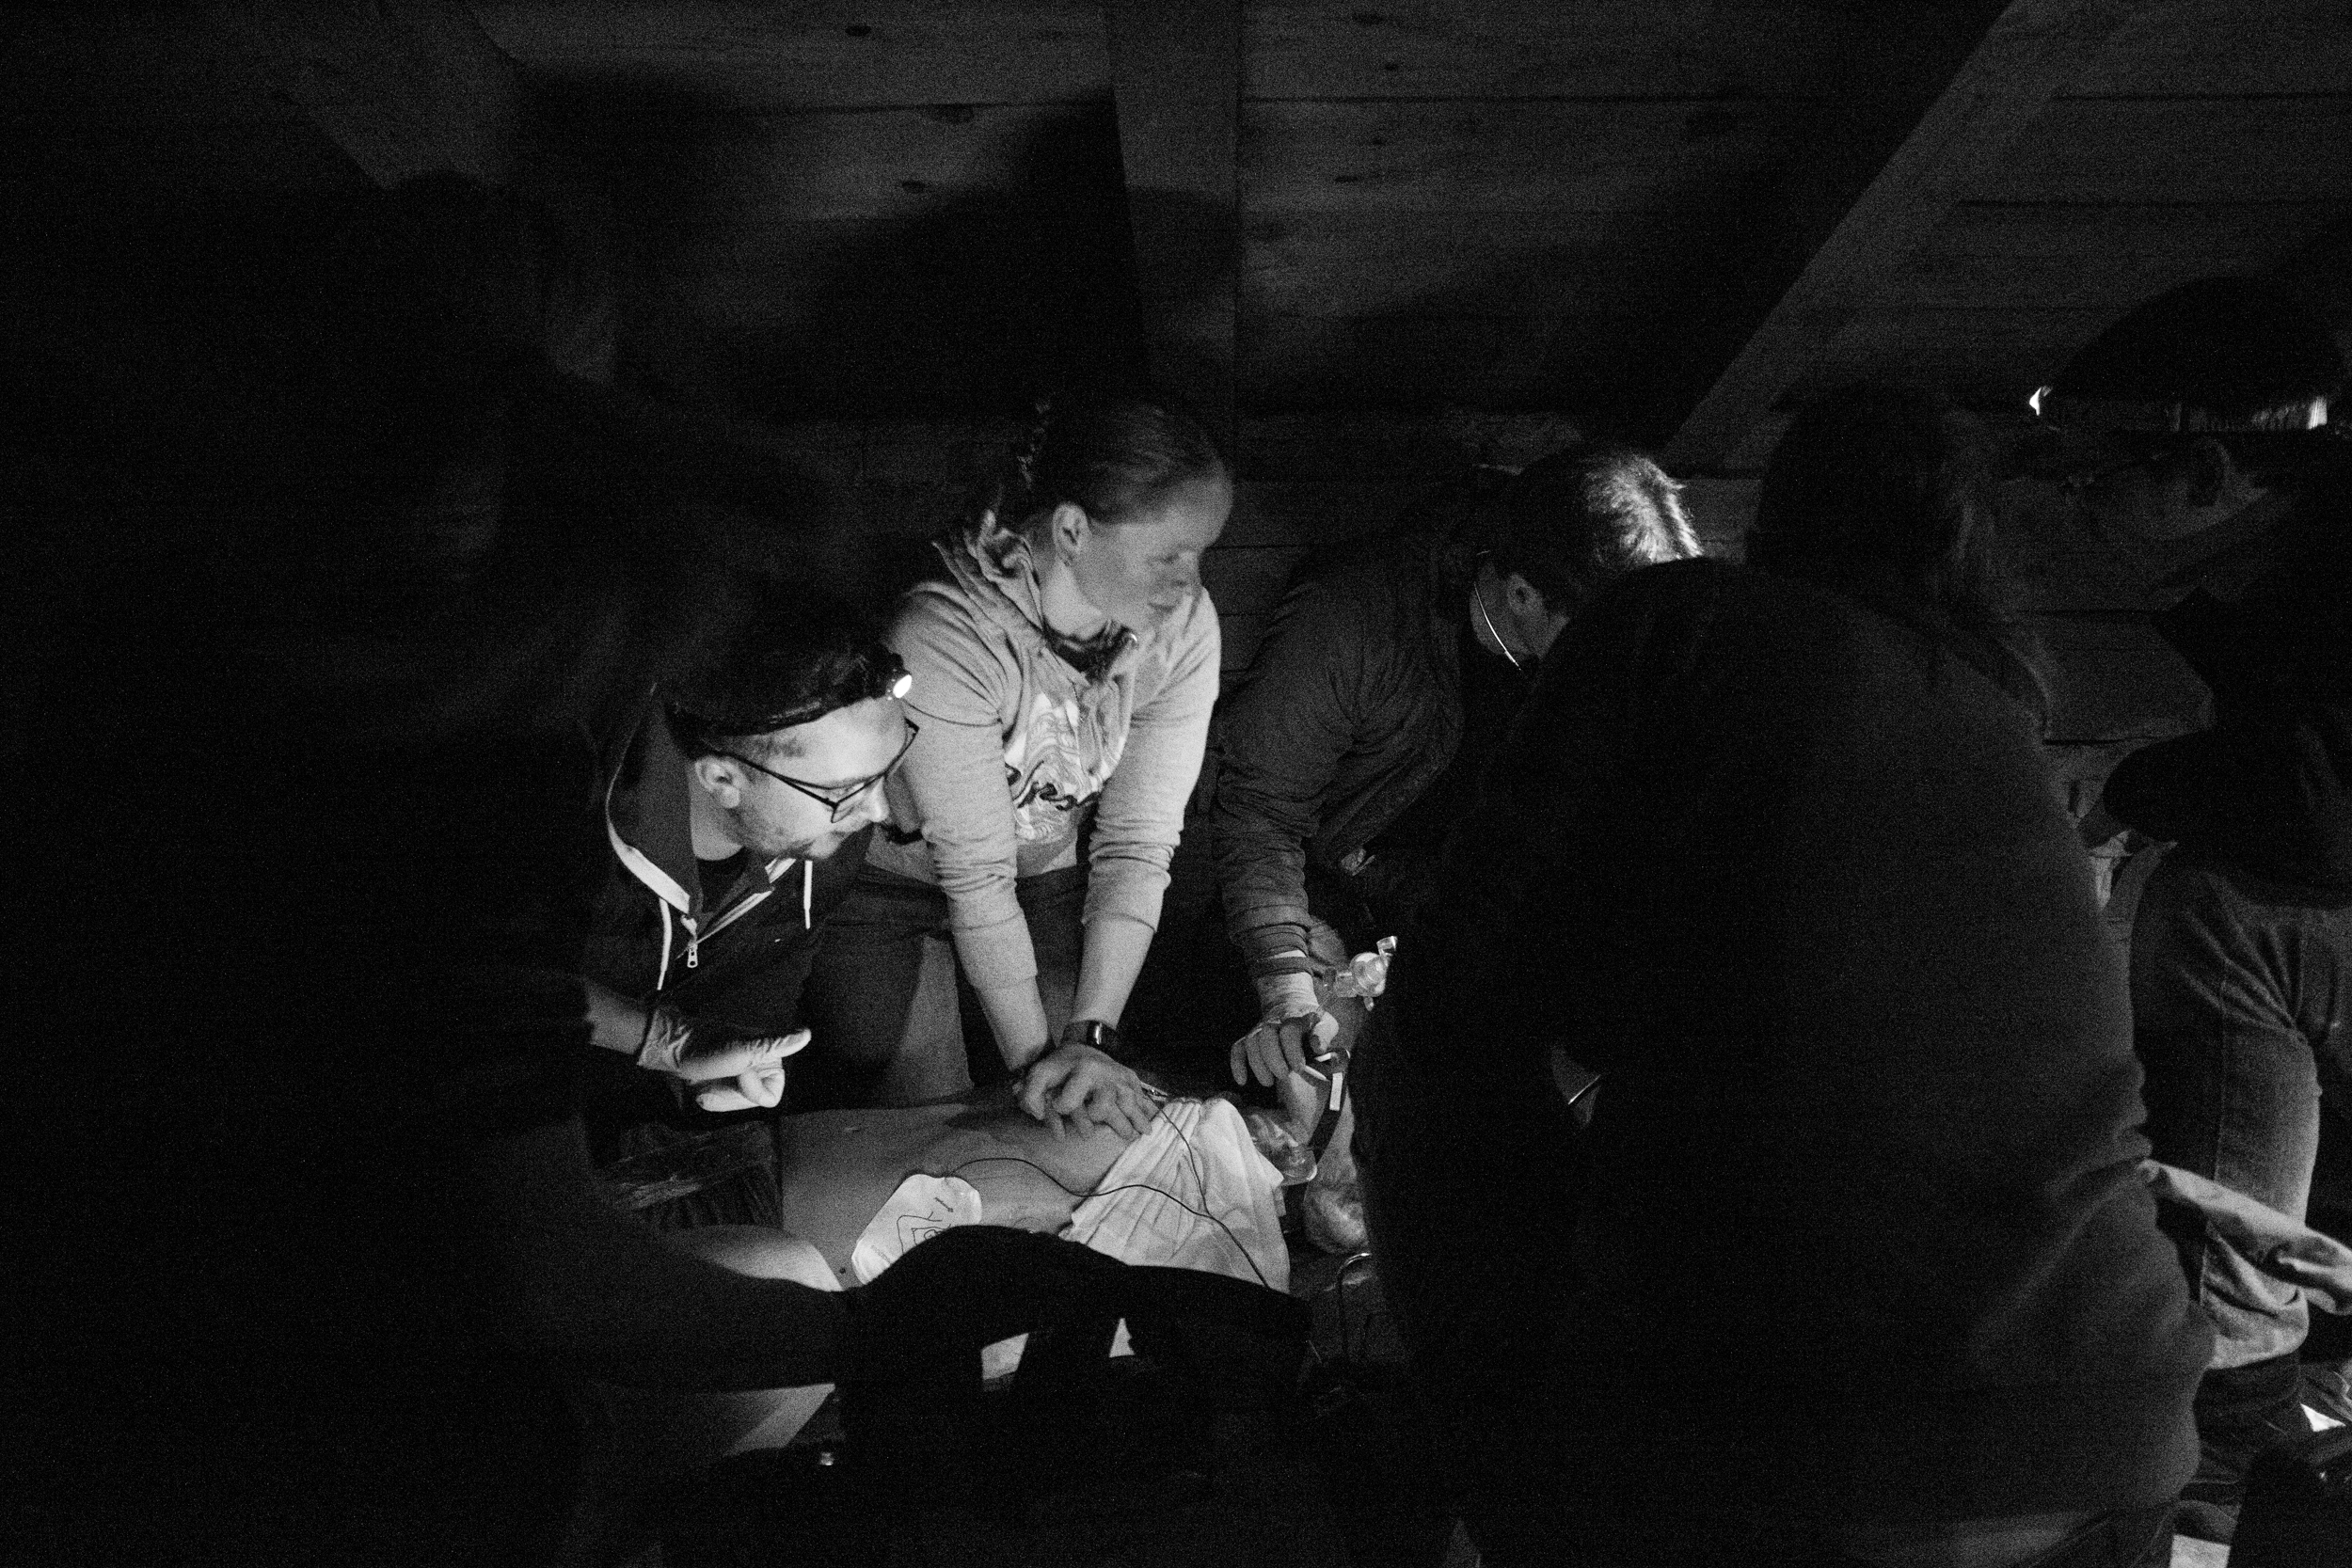 Training with the  Red Cross  and the  Mountain Rescue , in the dark in an attic! Shot with Canon 6d with Tmron 28-75 f/2.8 at 1/80 sec f/4.0 ISO 8000